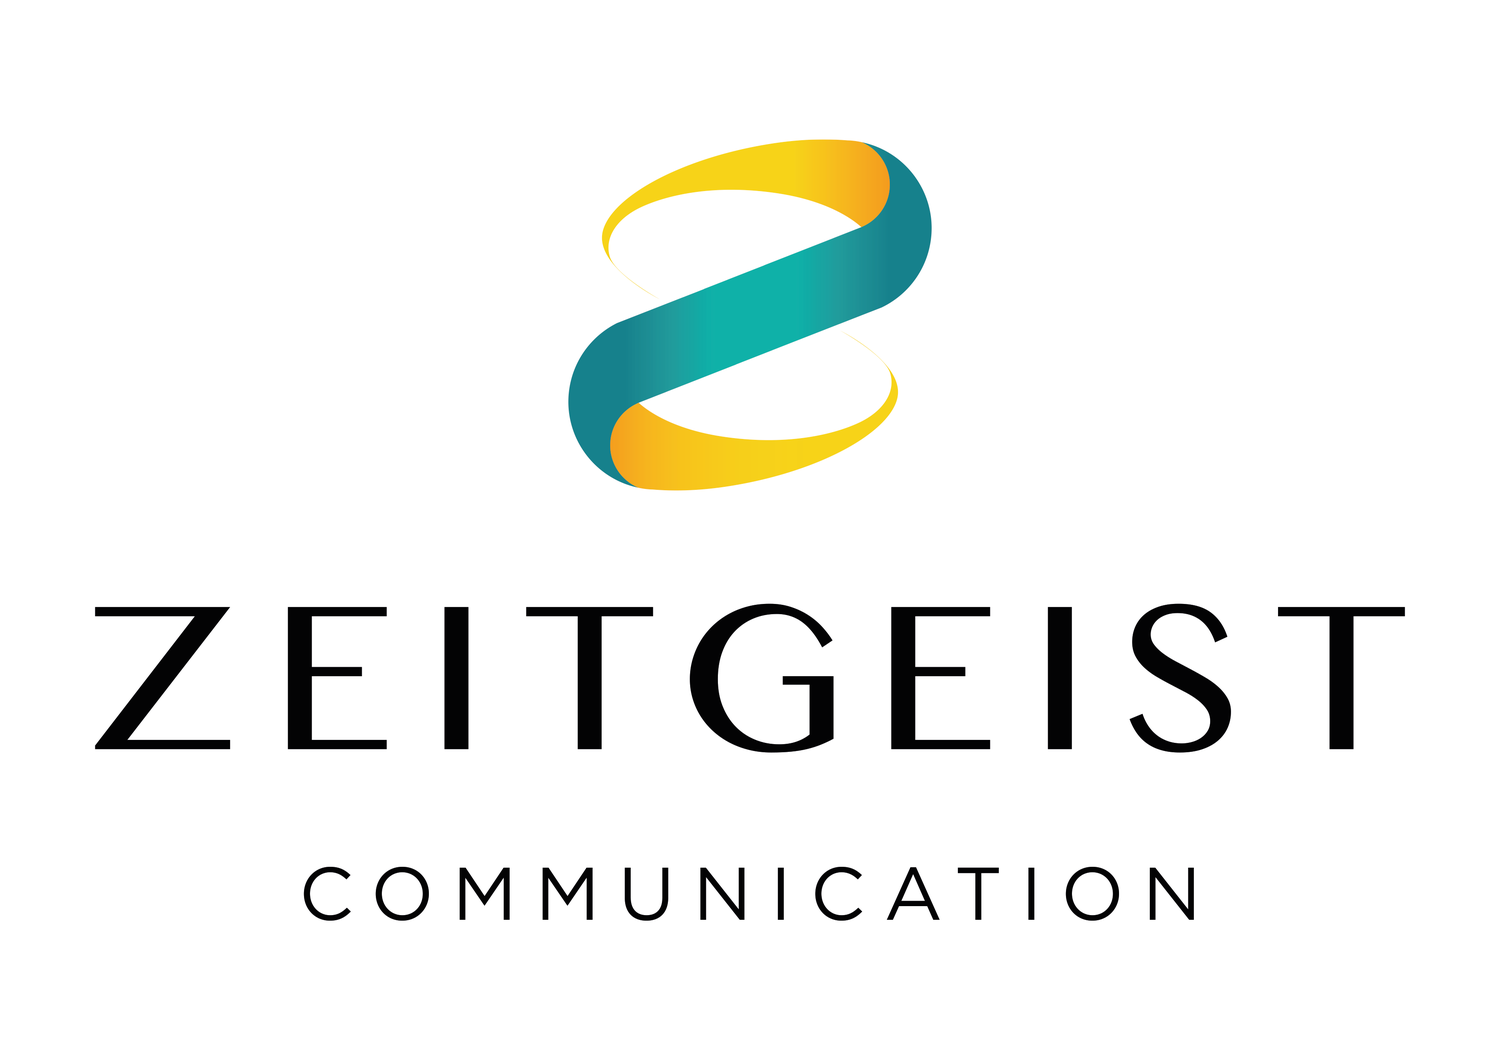 ZEITGEIST COMMUNICATION